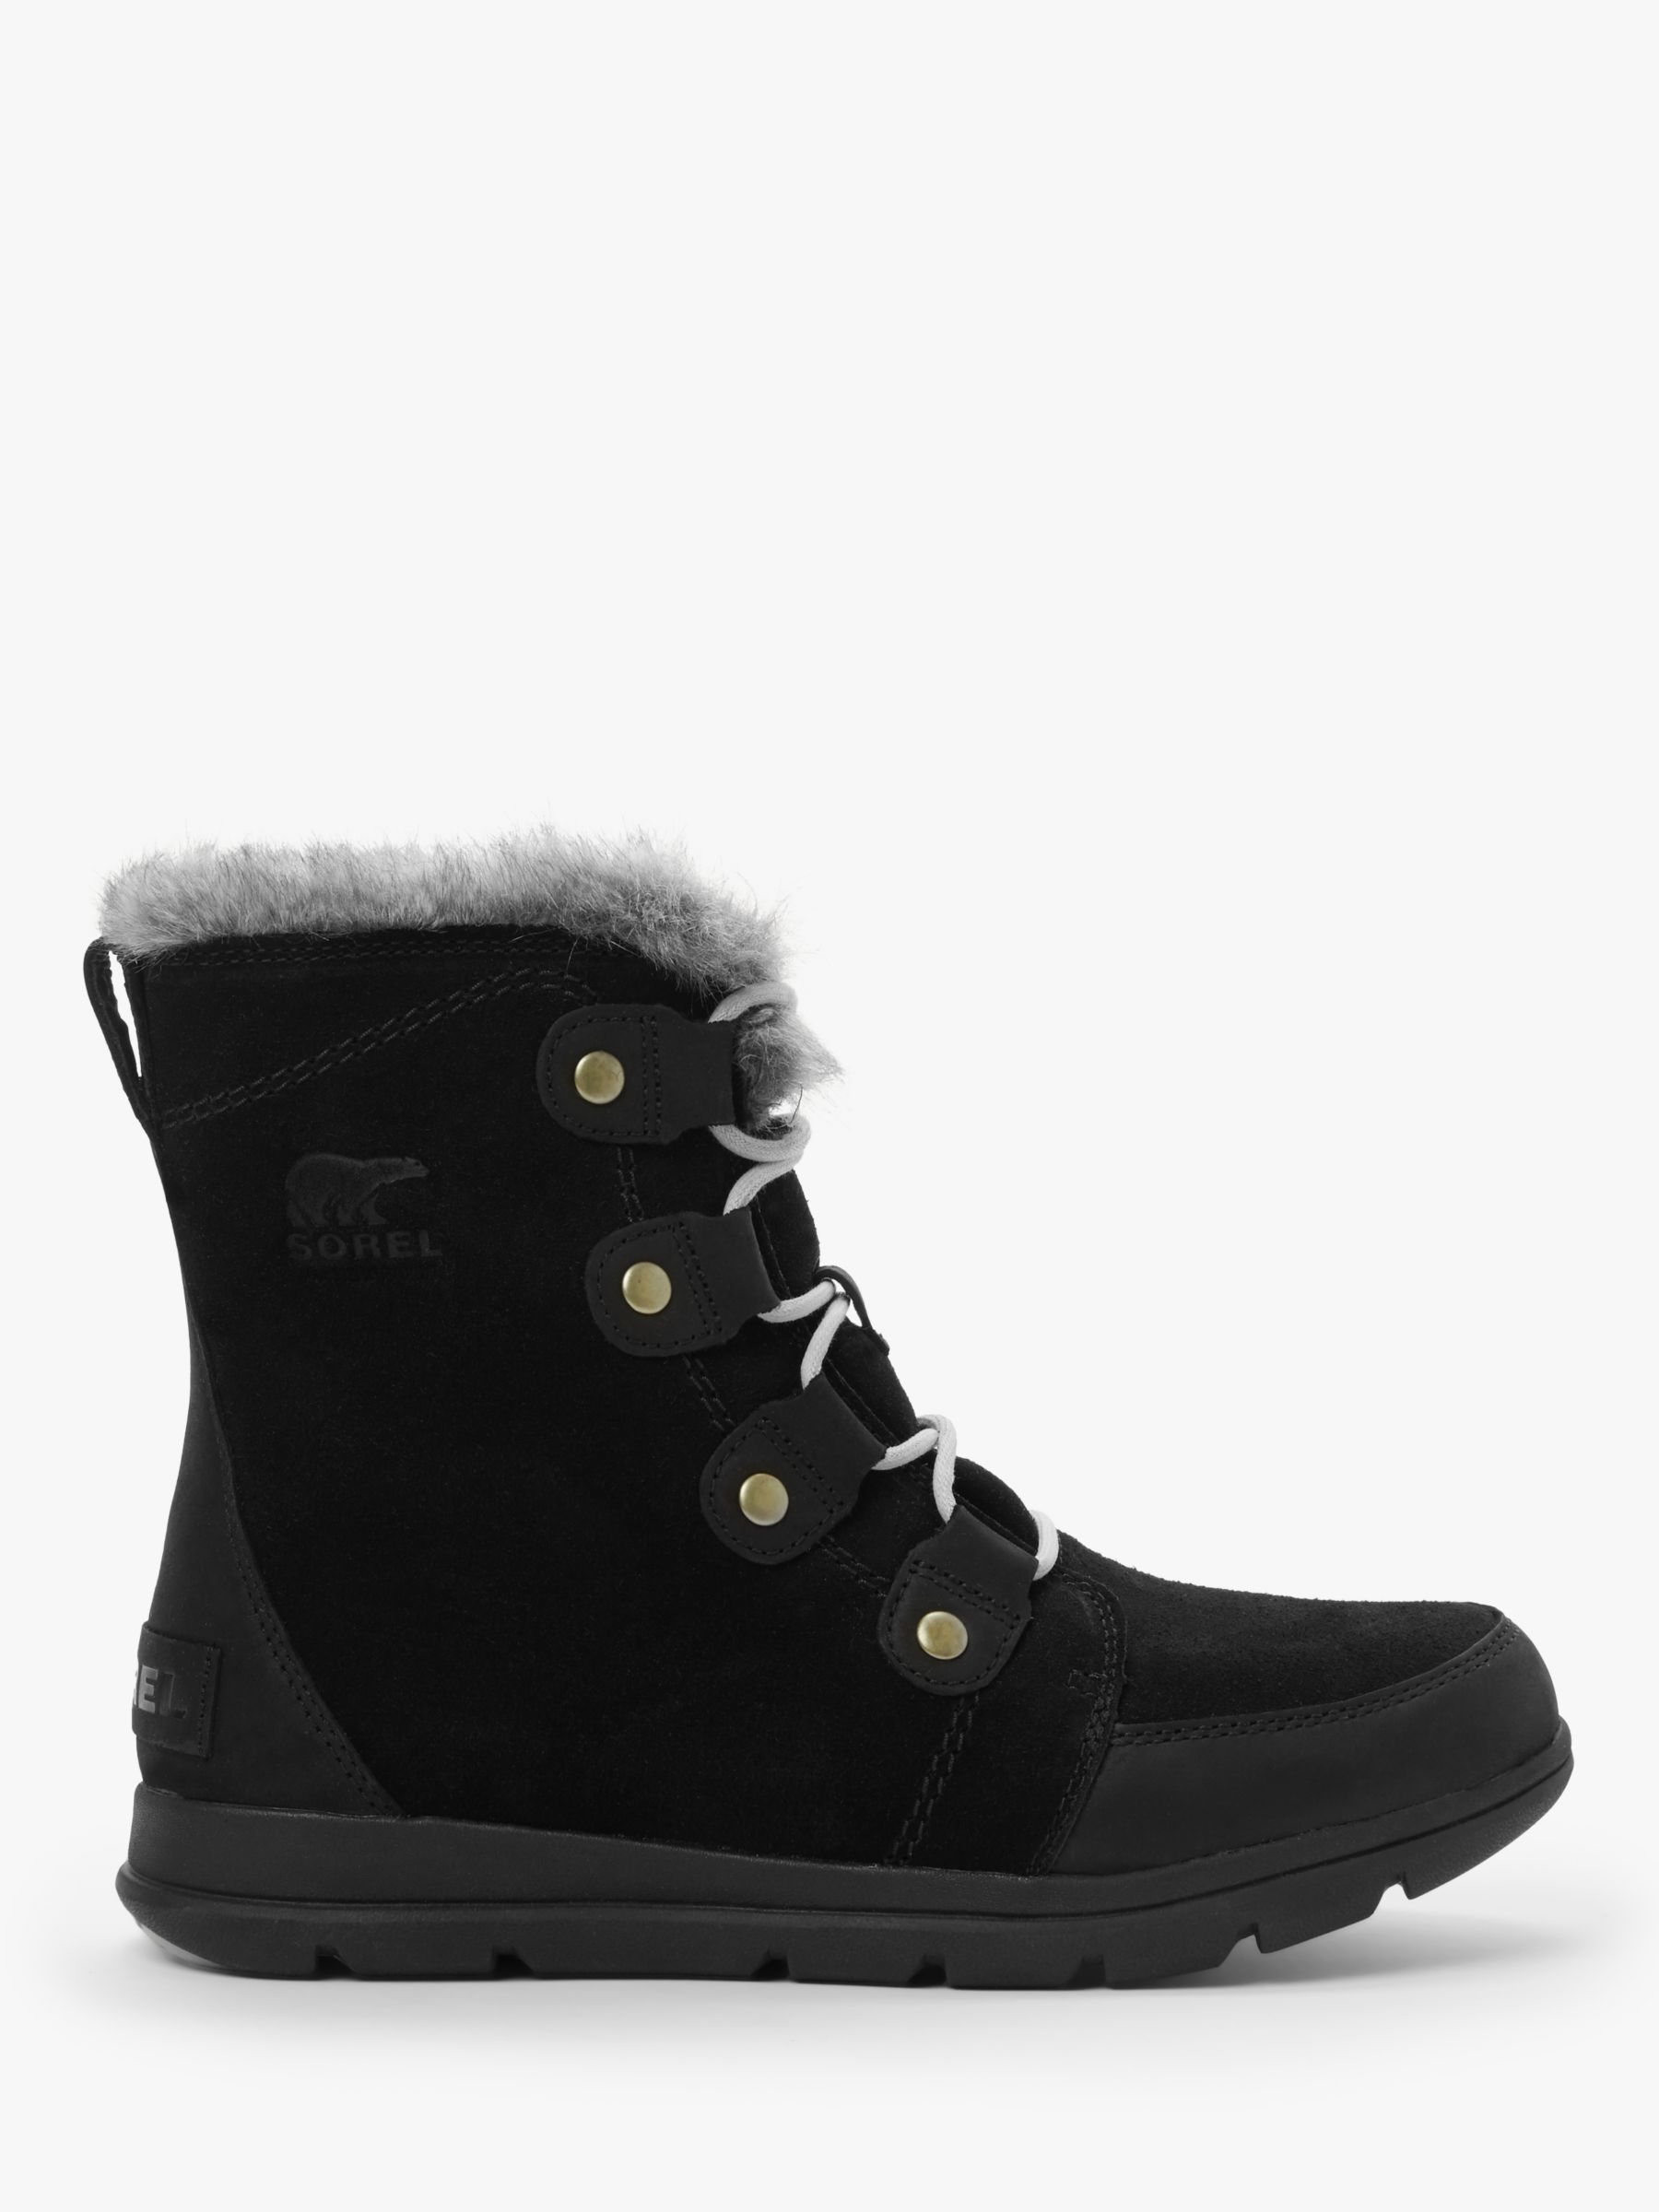 Sorel Sorel Explorer Joan Snow Boots, Black